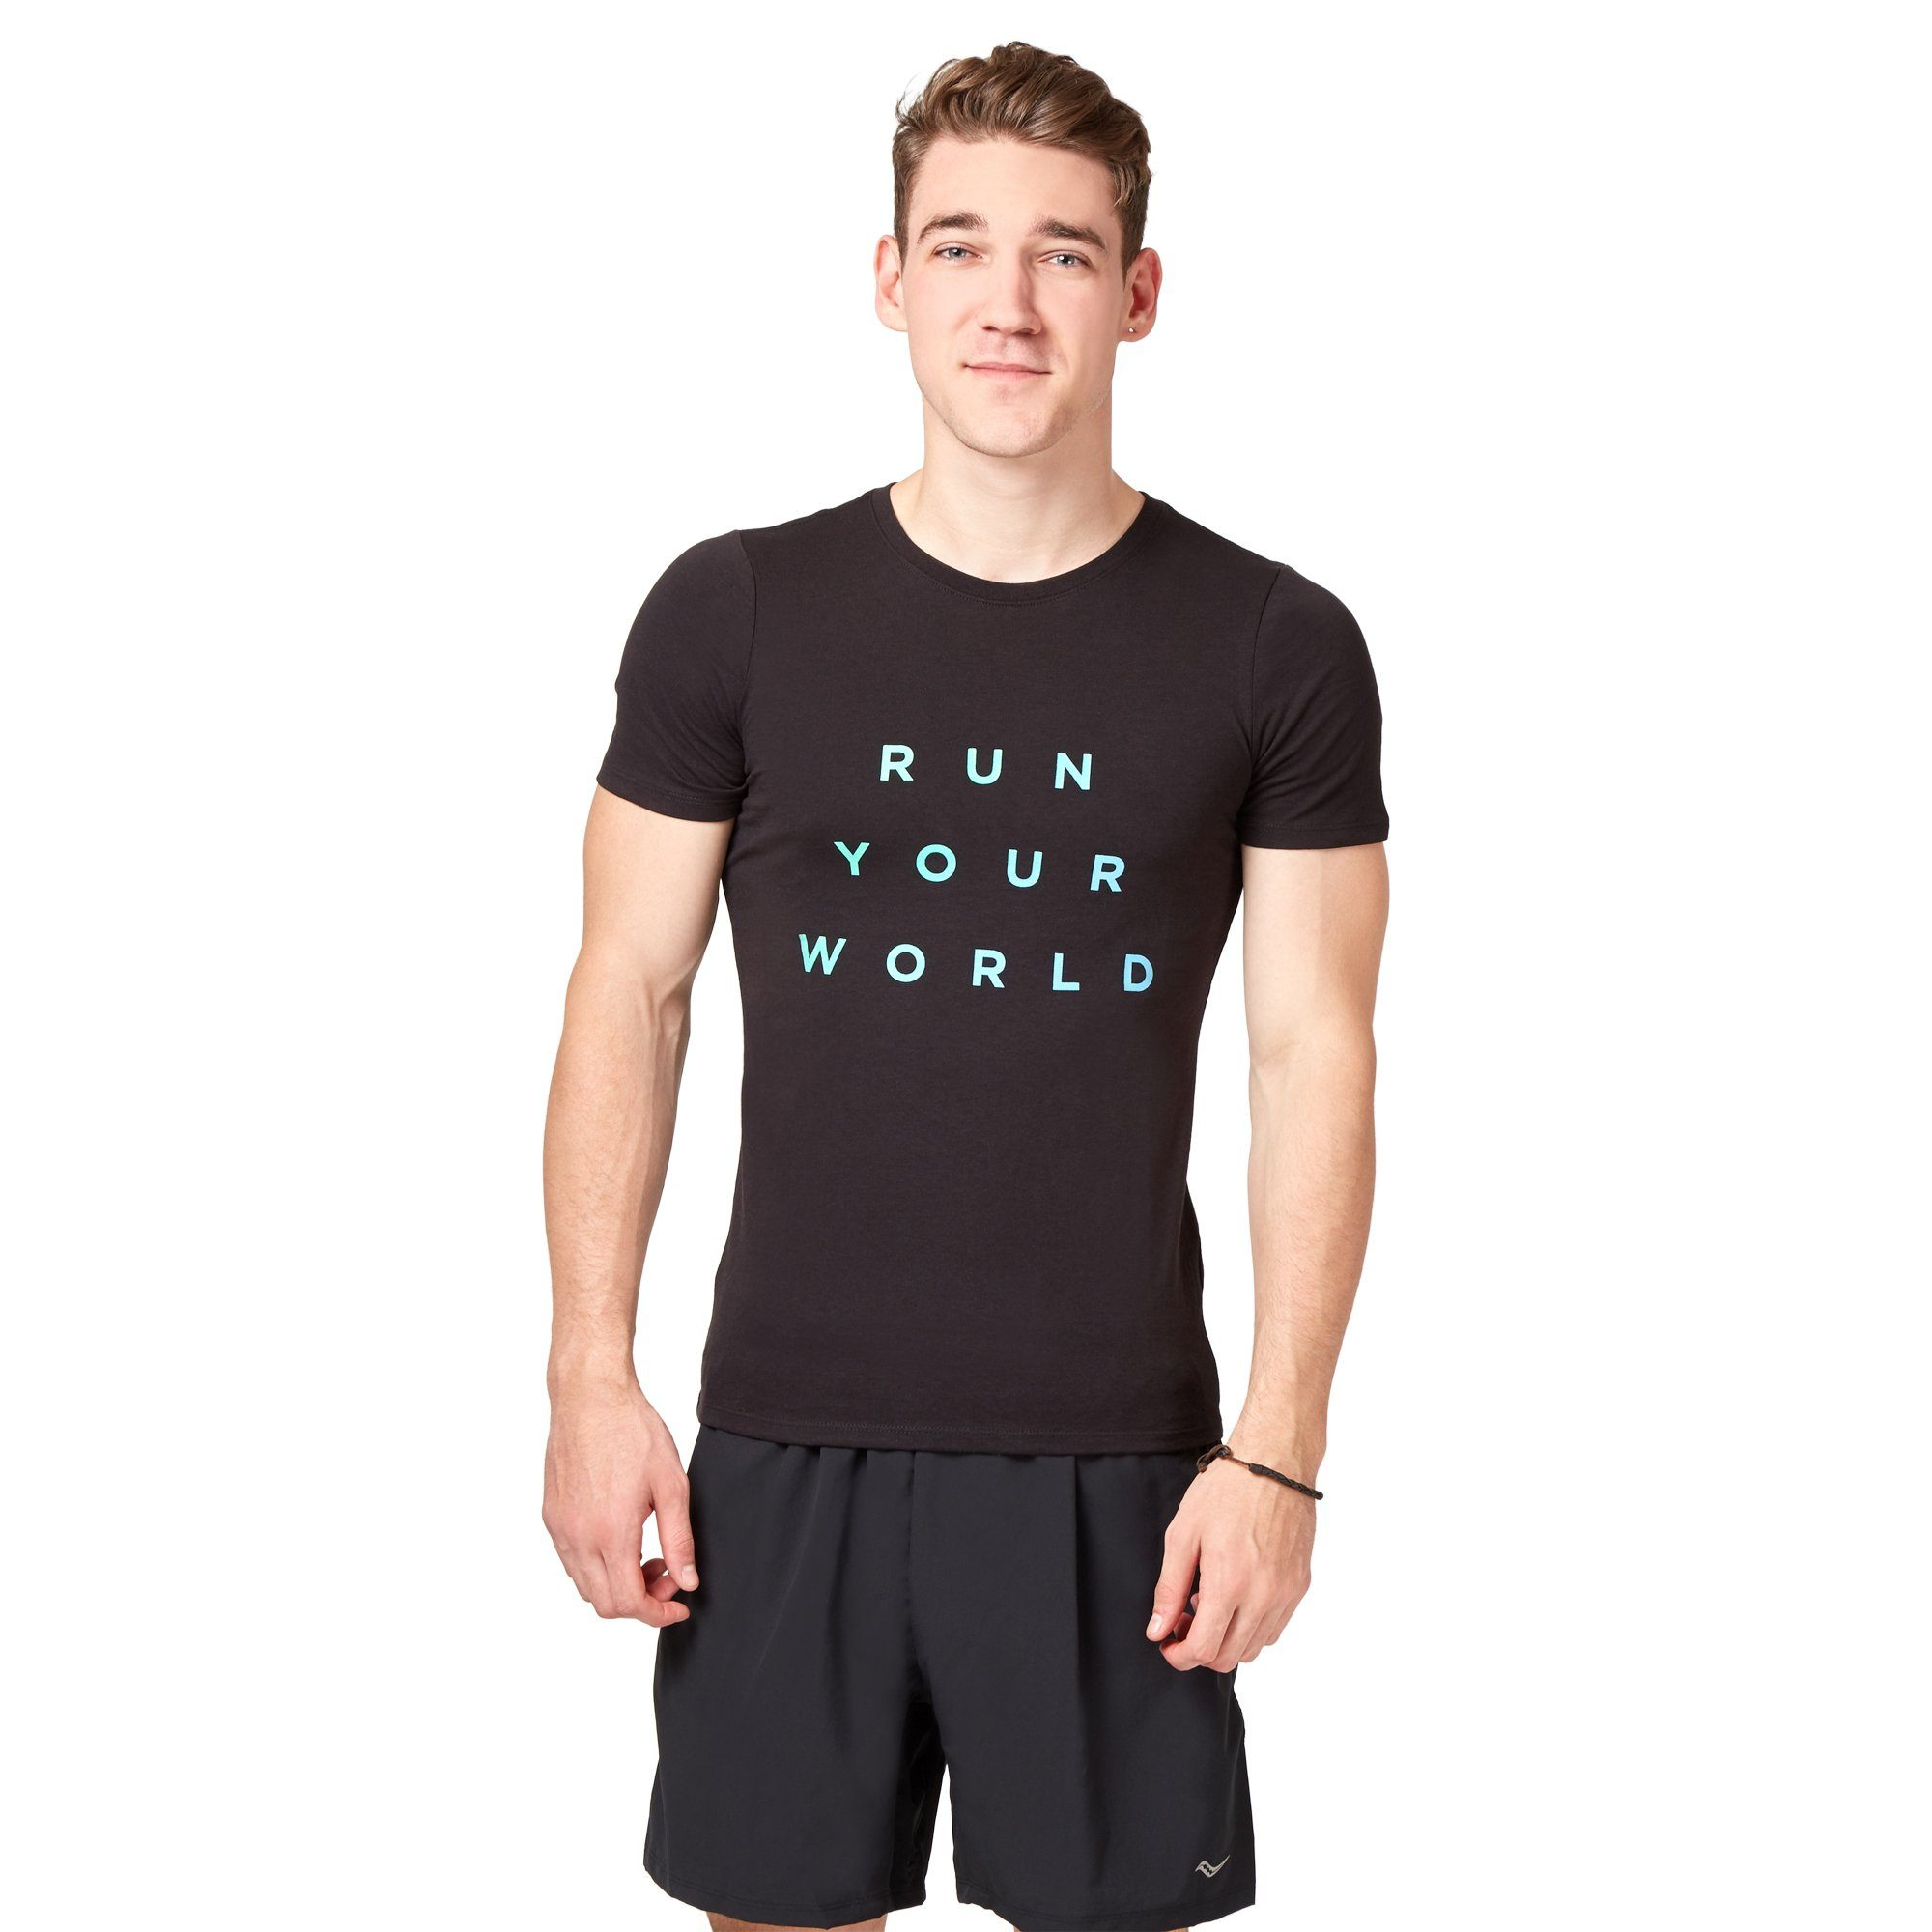 Saucony Run Your World Men's GA Tee - Black Apparel Saucony  (2014998069307)